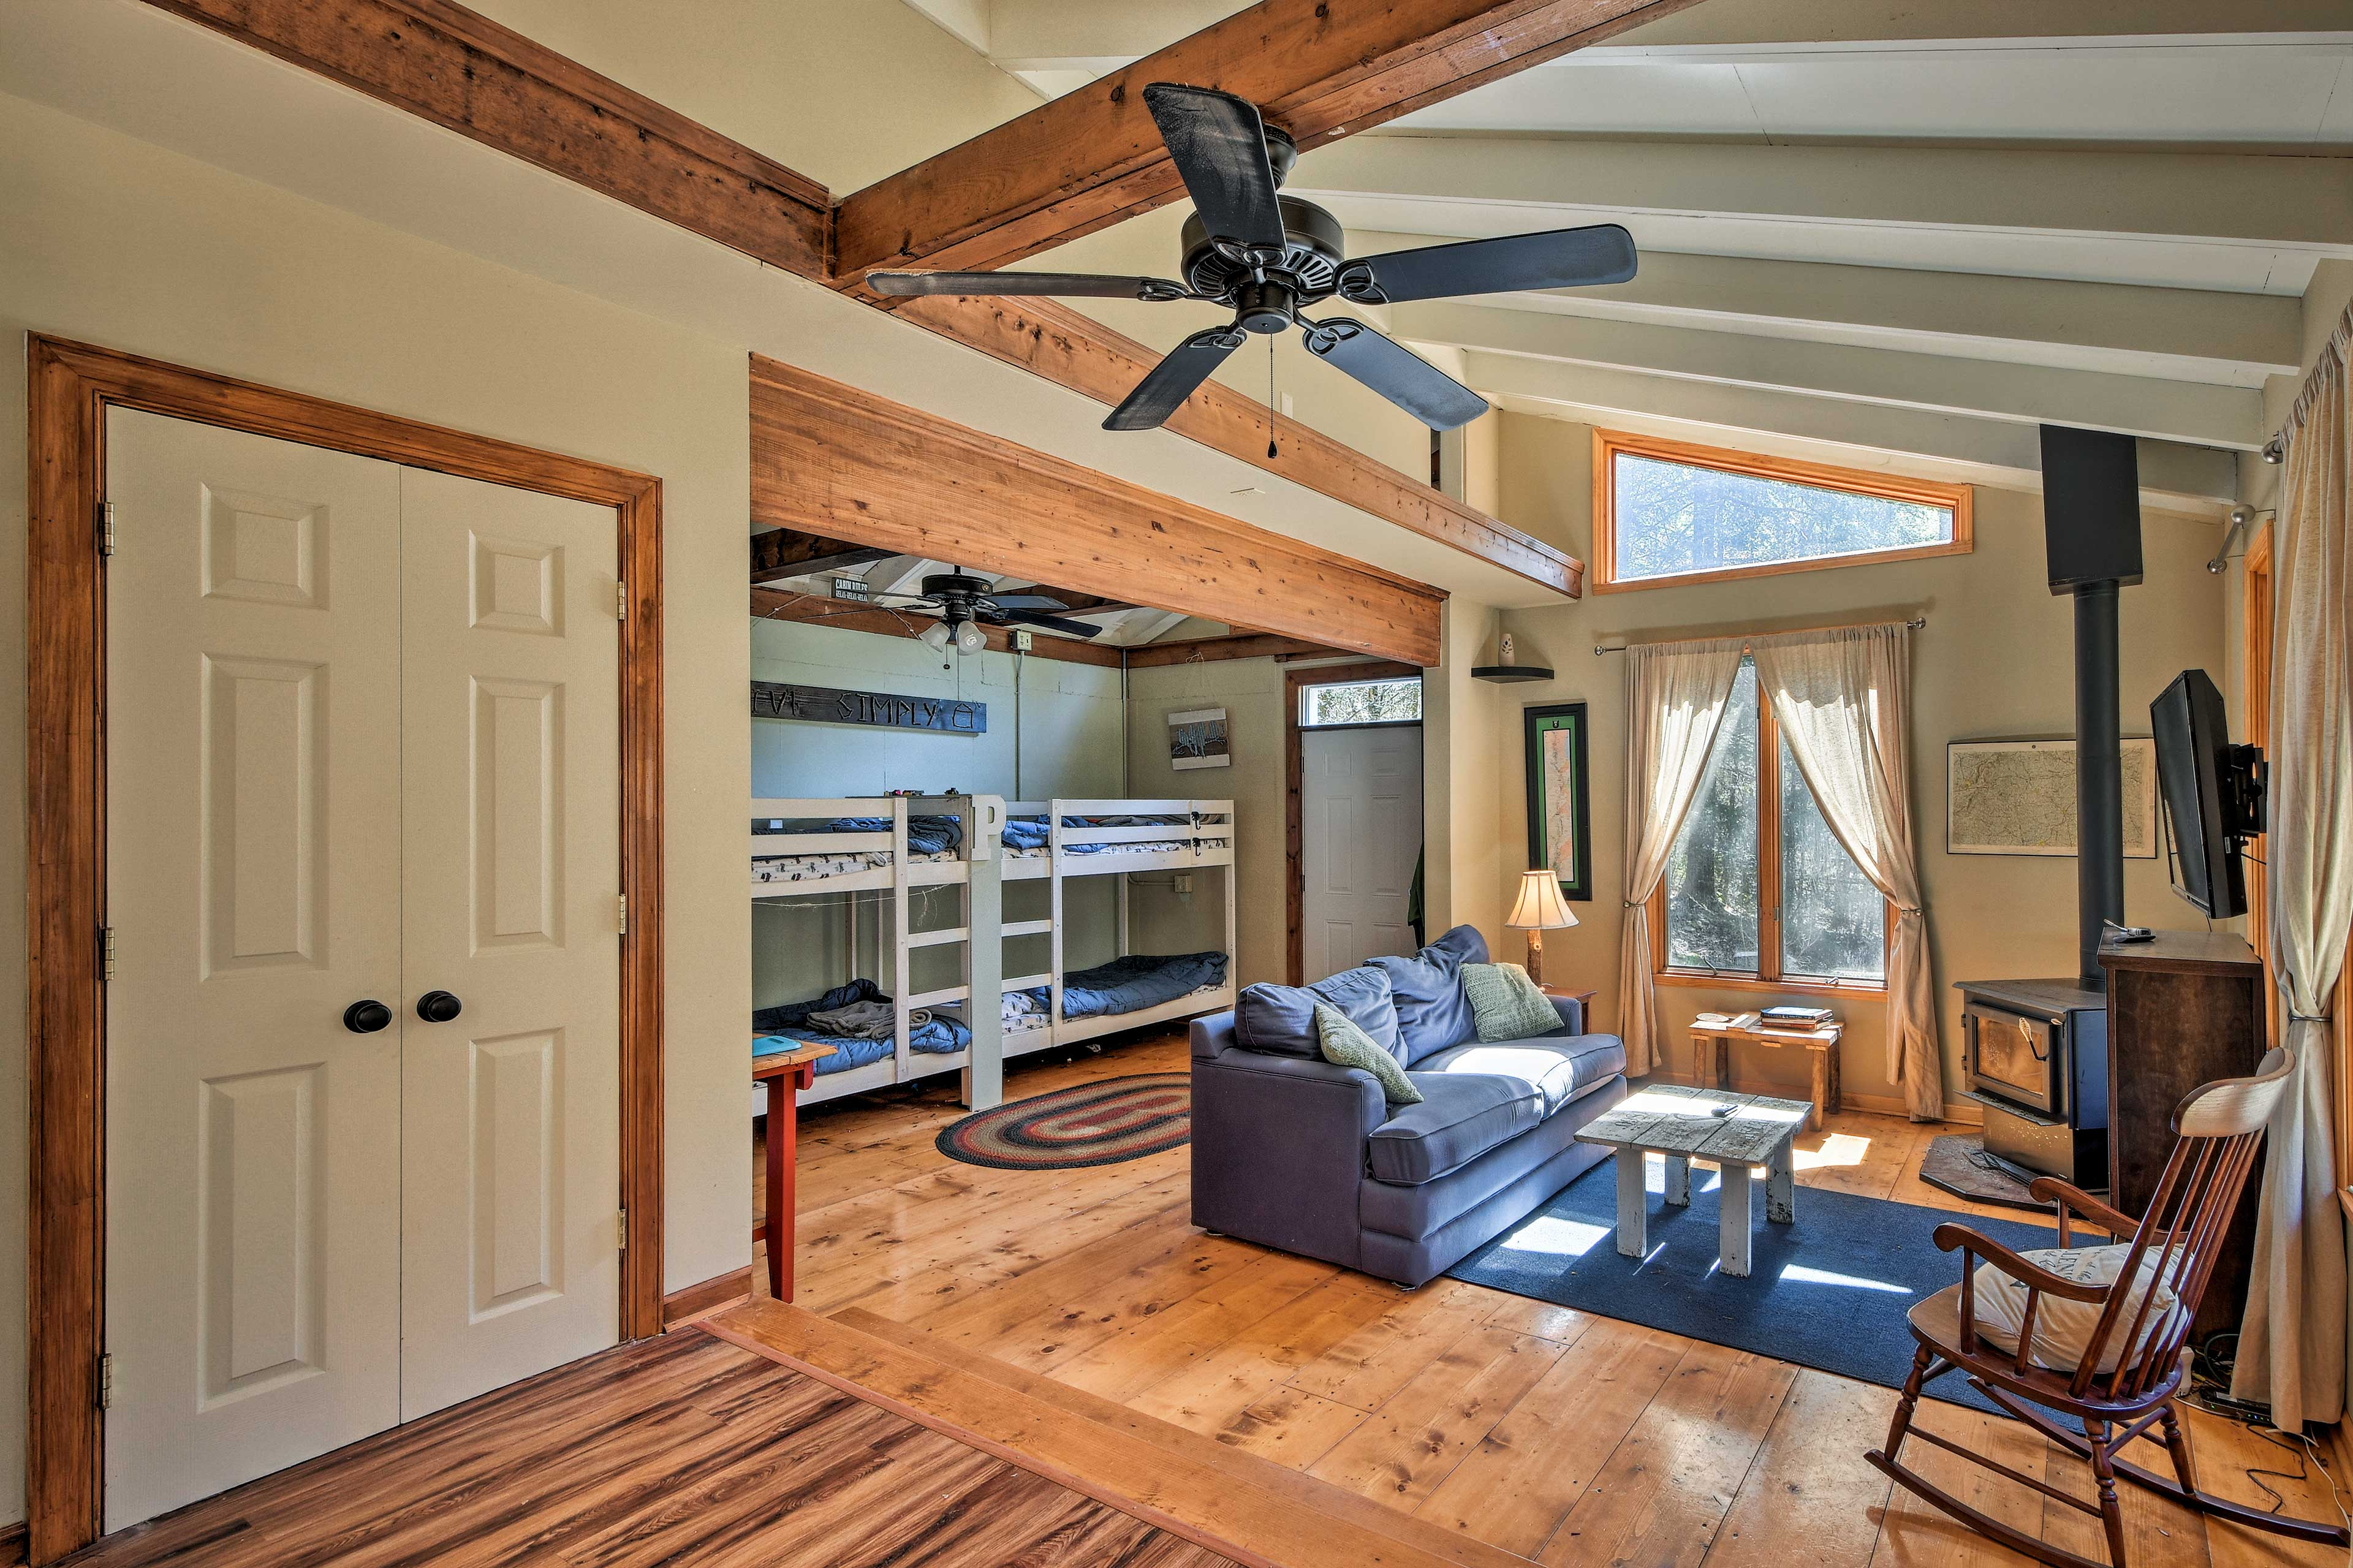 High vaulted ceilings create an open, airy atmosphere.